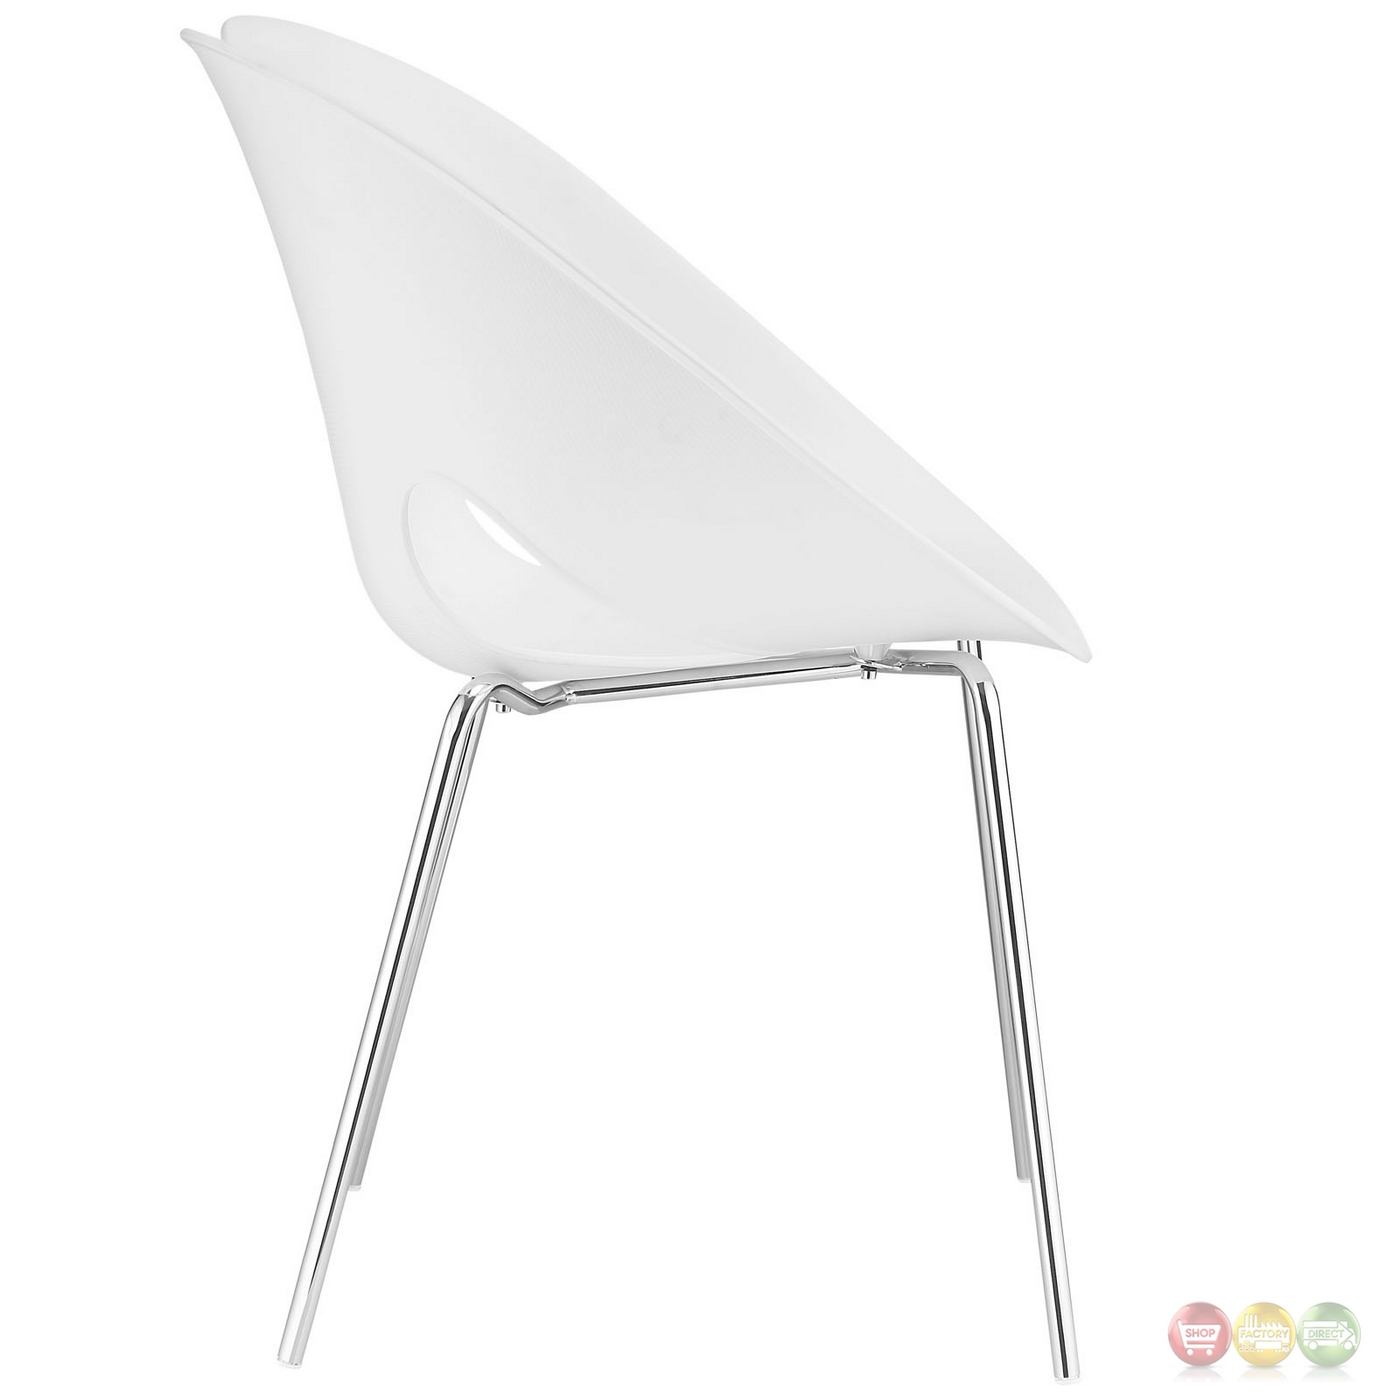 plastic chairs with steel legs chicco 360 high chair envelope winged back dining side